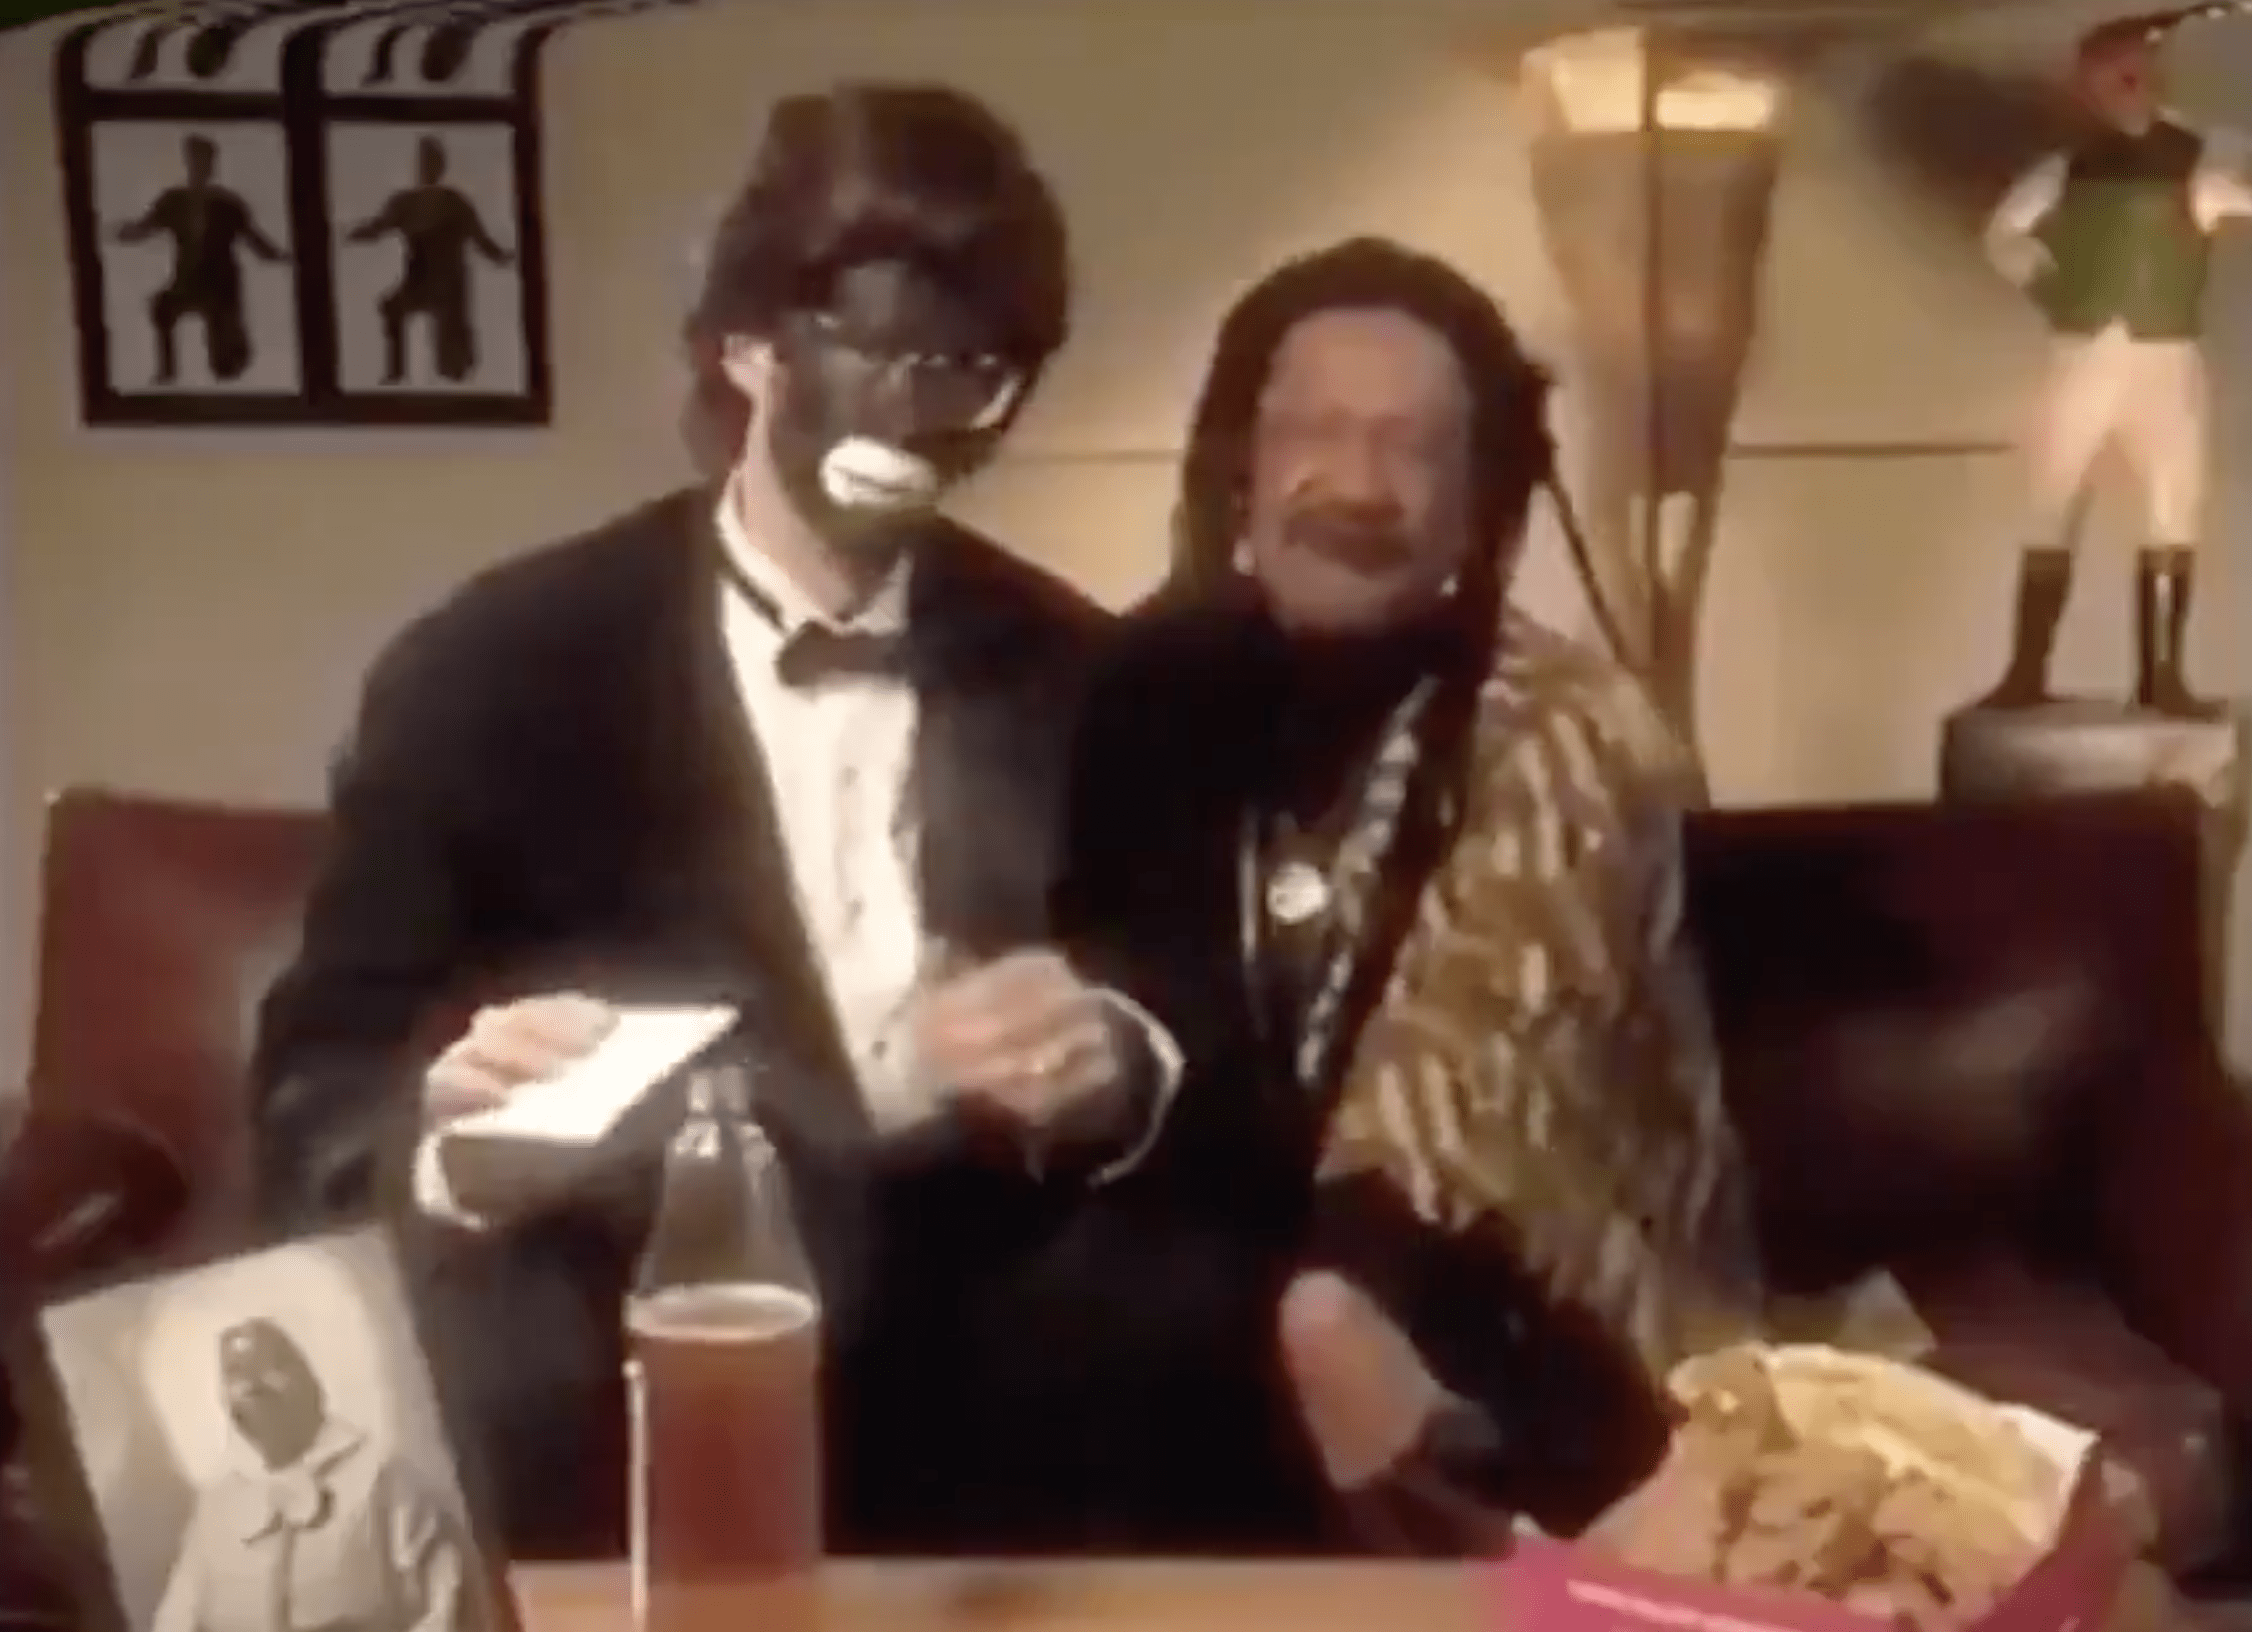 Howard Stern's 1994 blackface sketch resurfaces to haunt him